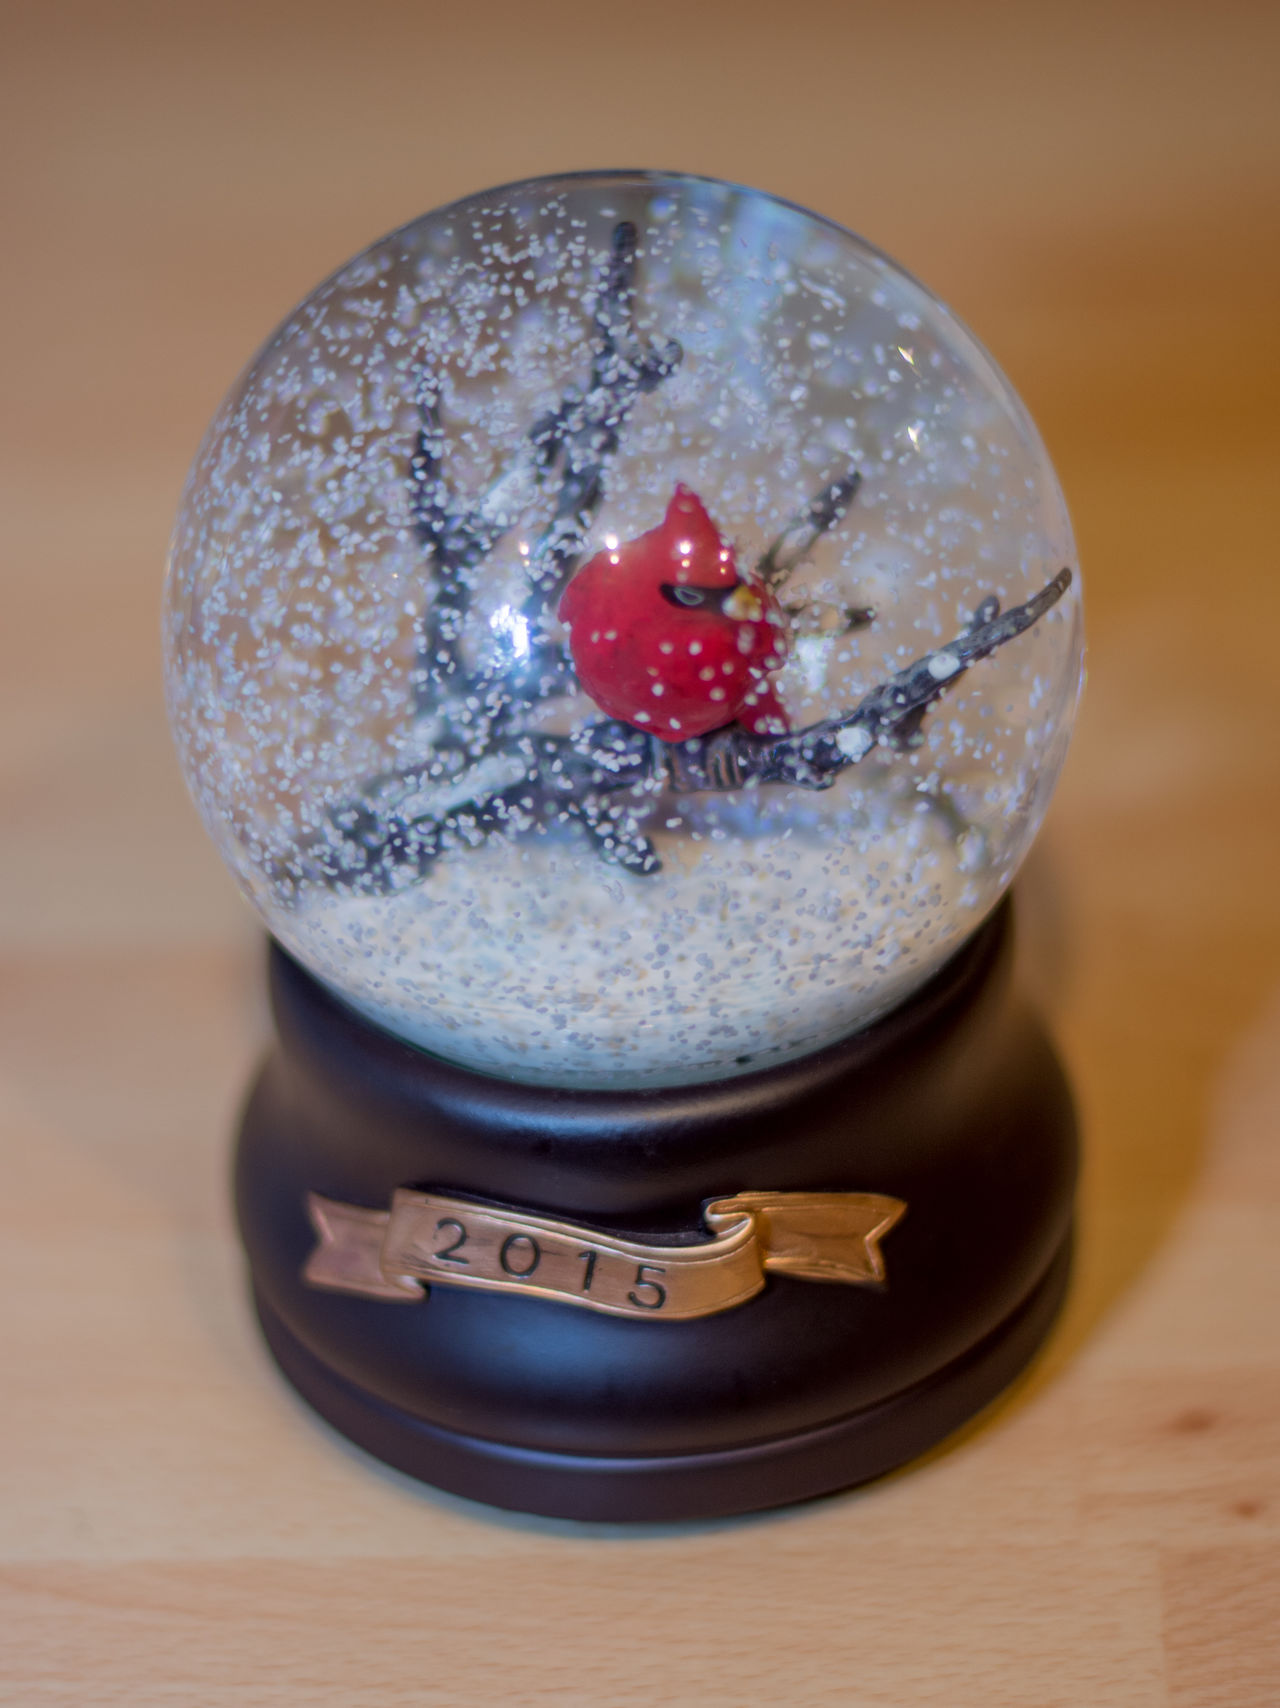 2015  Cardinal Birds Close-up Danger Indoors  Indulgence No People Snow Snow Globe Social Issues